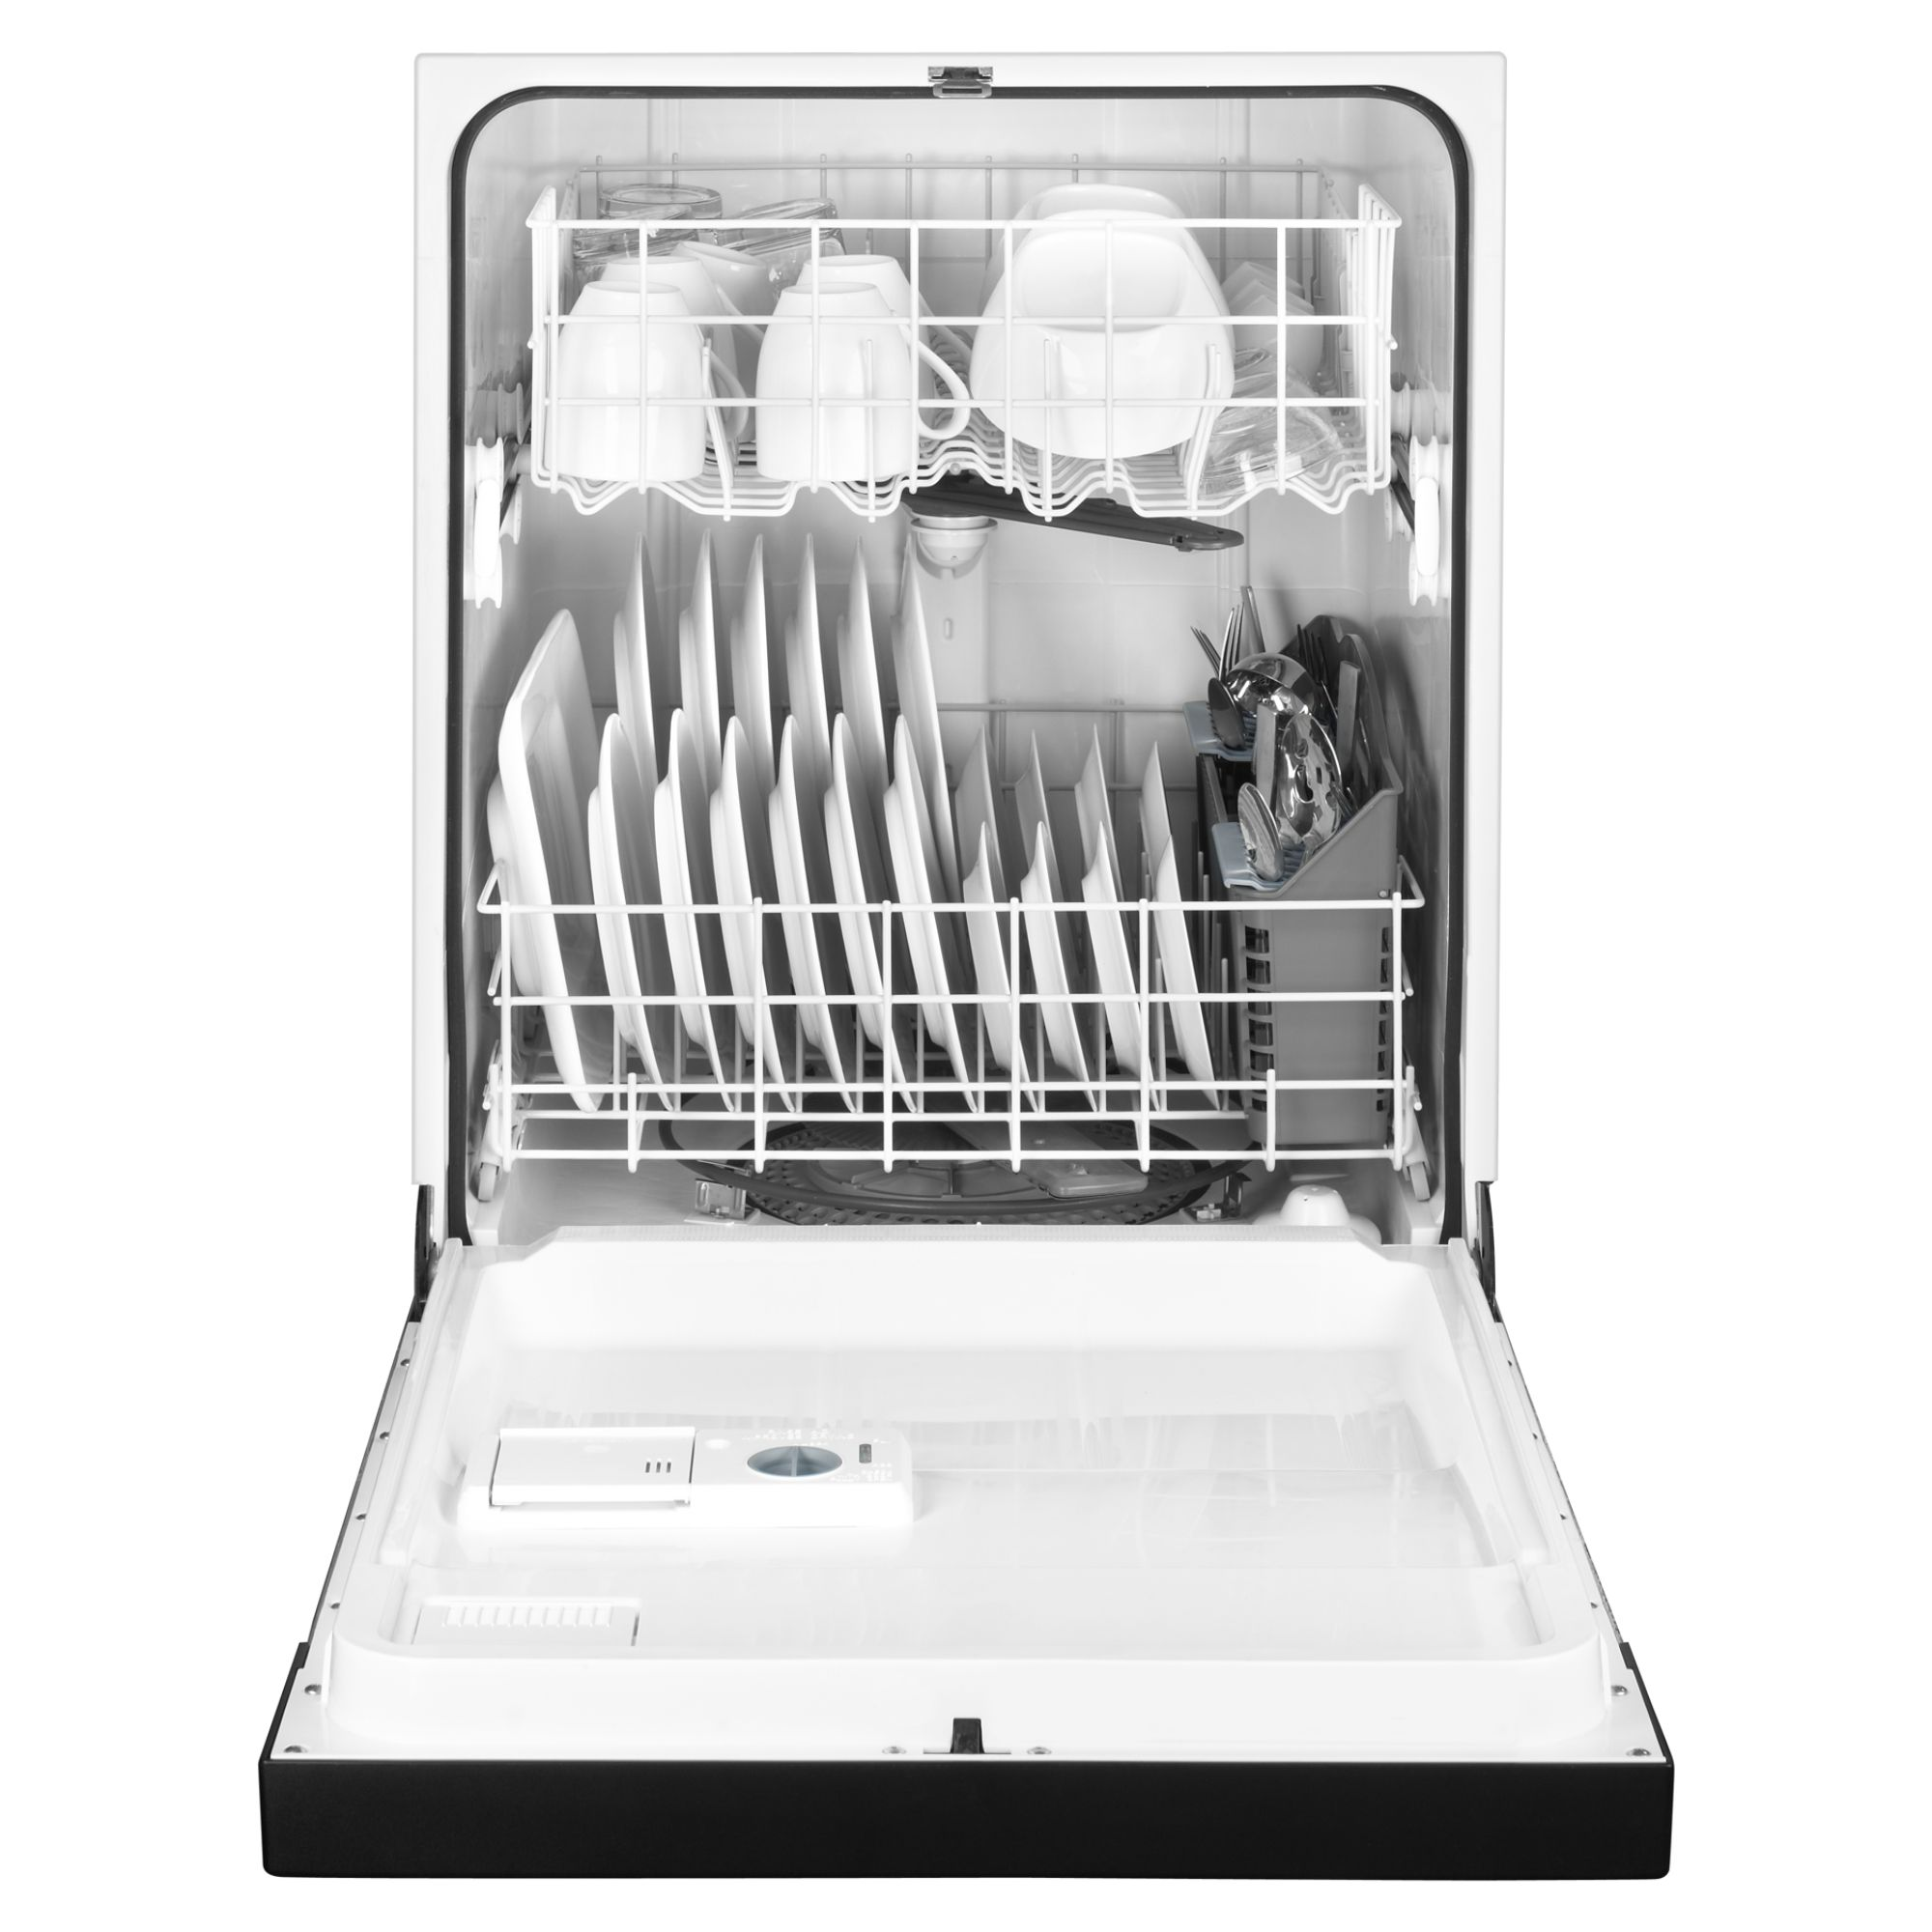 "Maytag 24"" Jetclean® Plus Dishwasher w/ High Temperature Wash Option - Black"